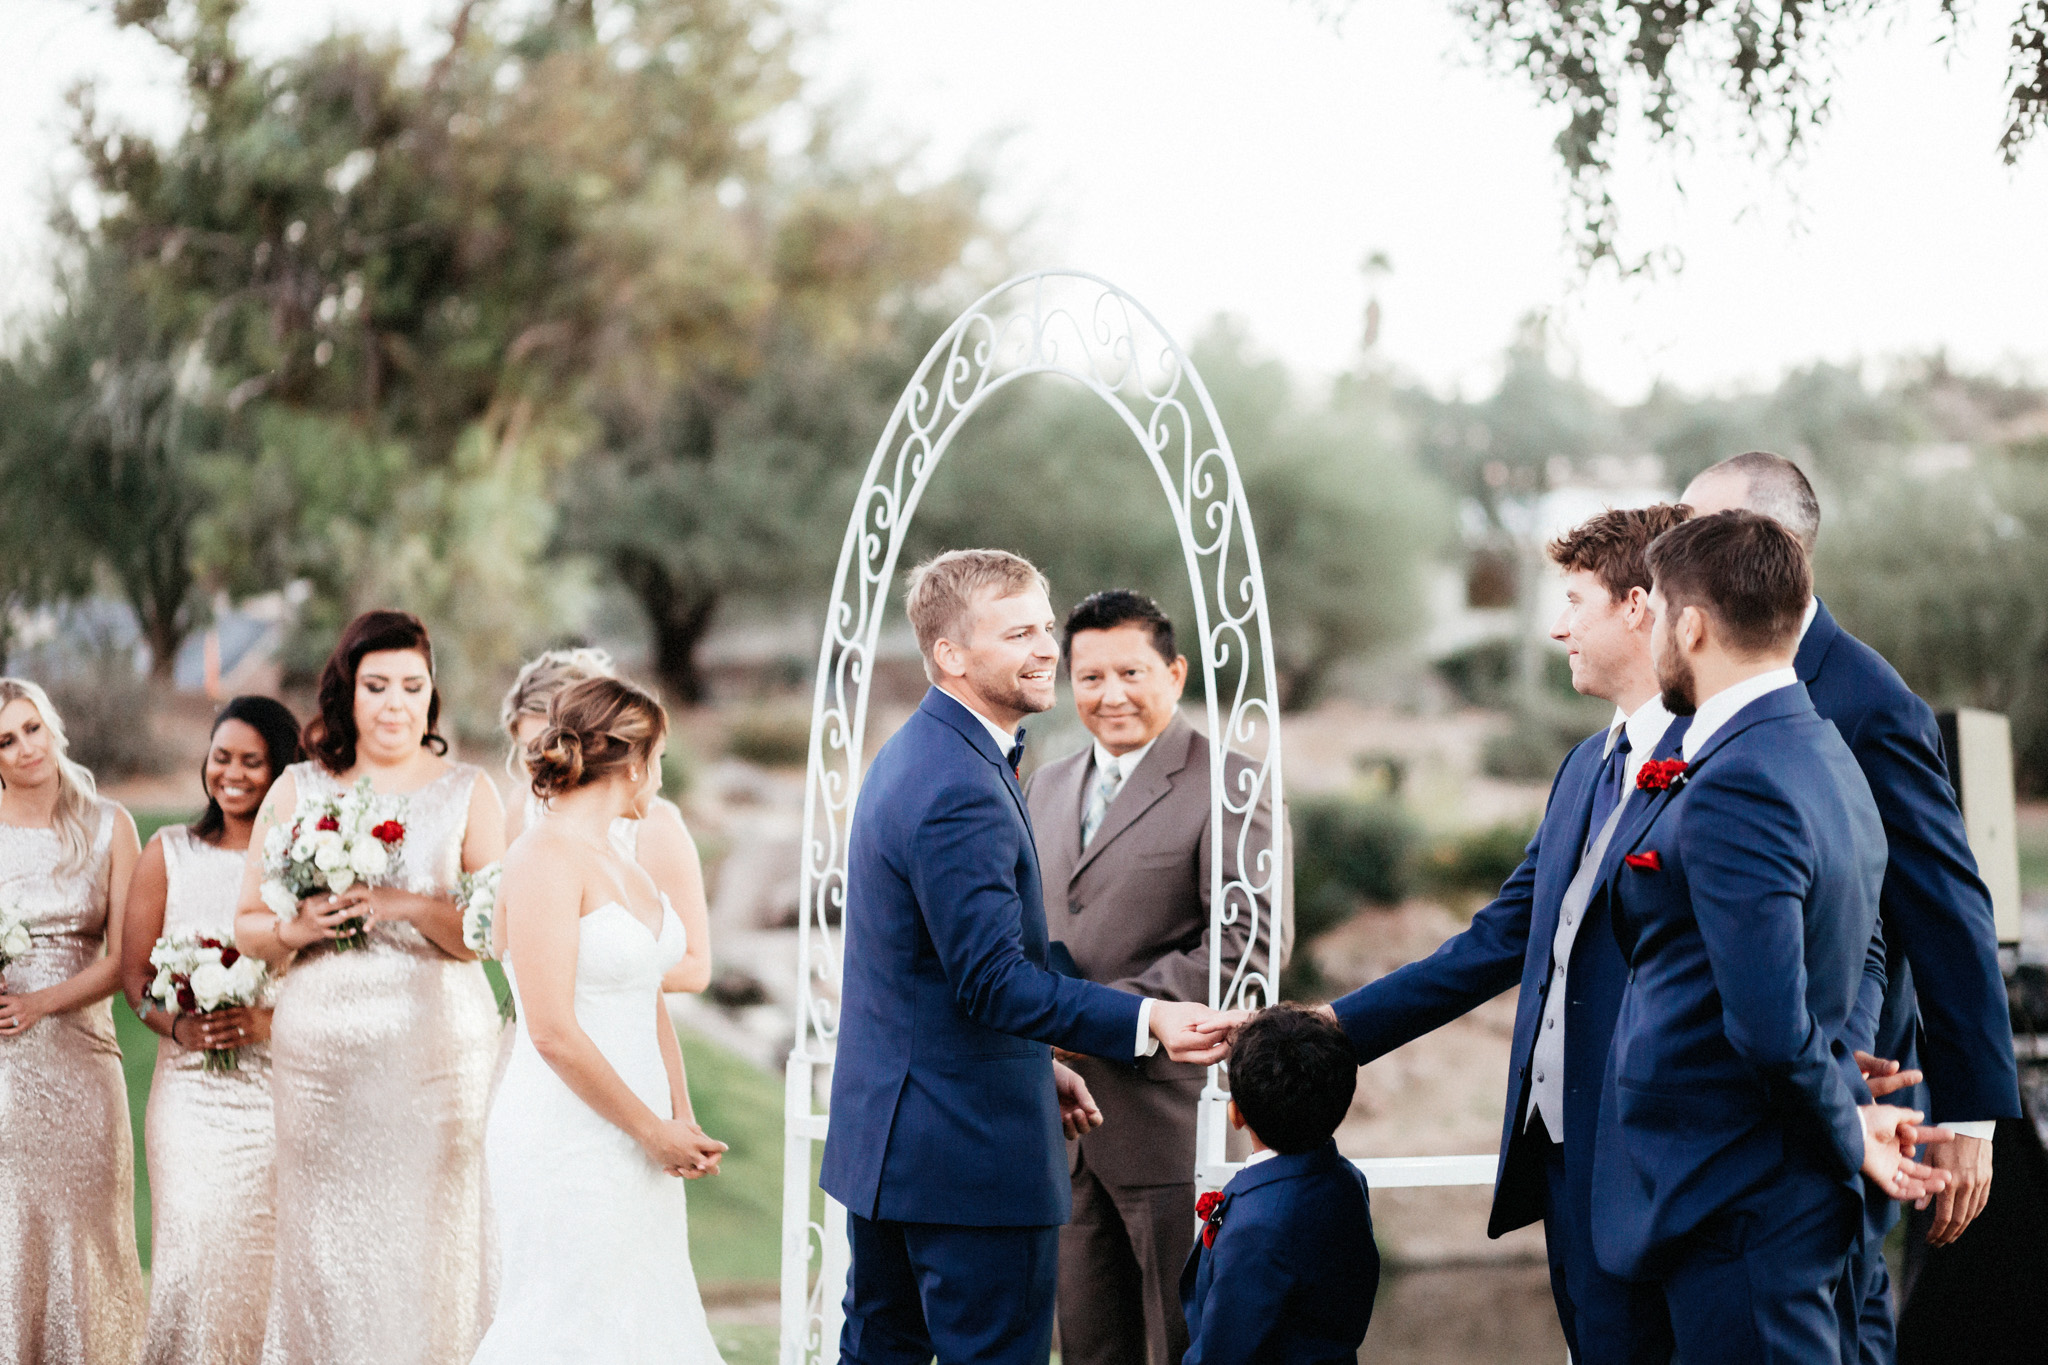 Tucson Wedding Photographer (83 of 117).jpg